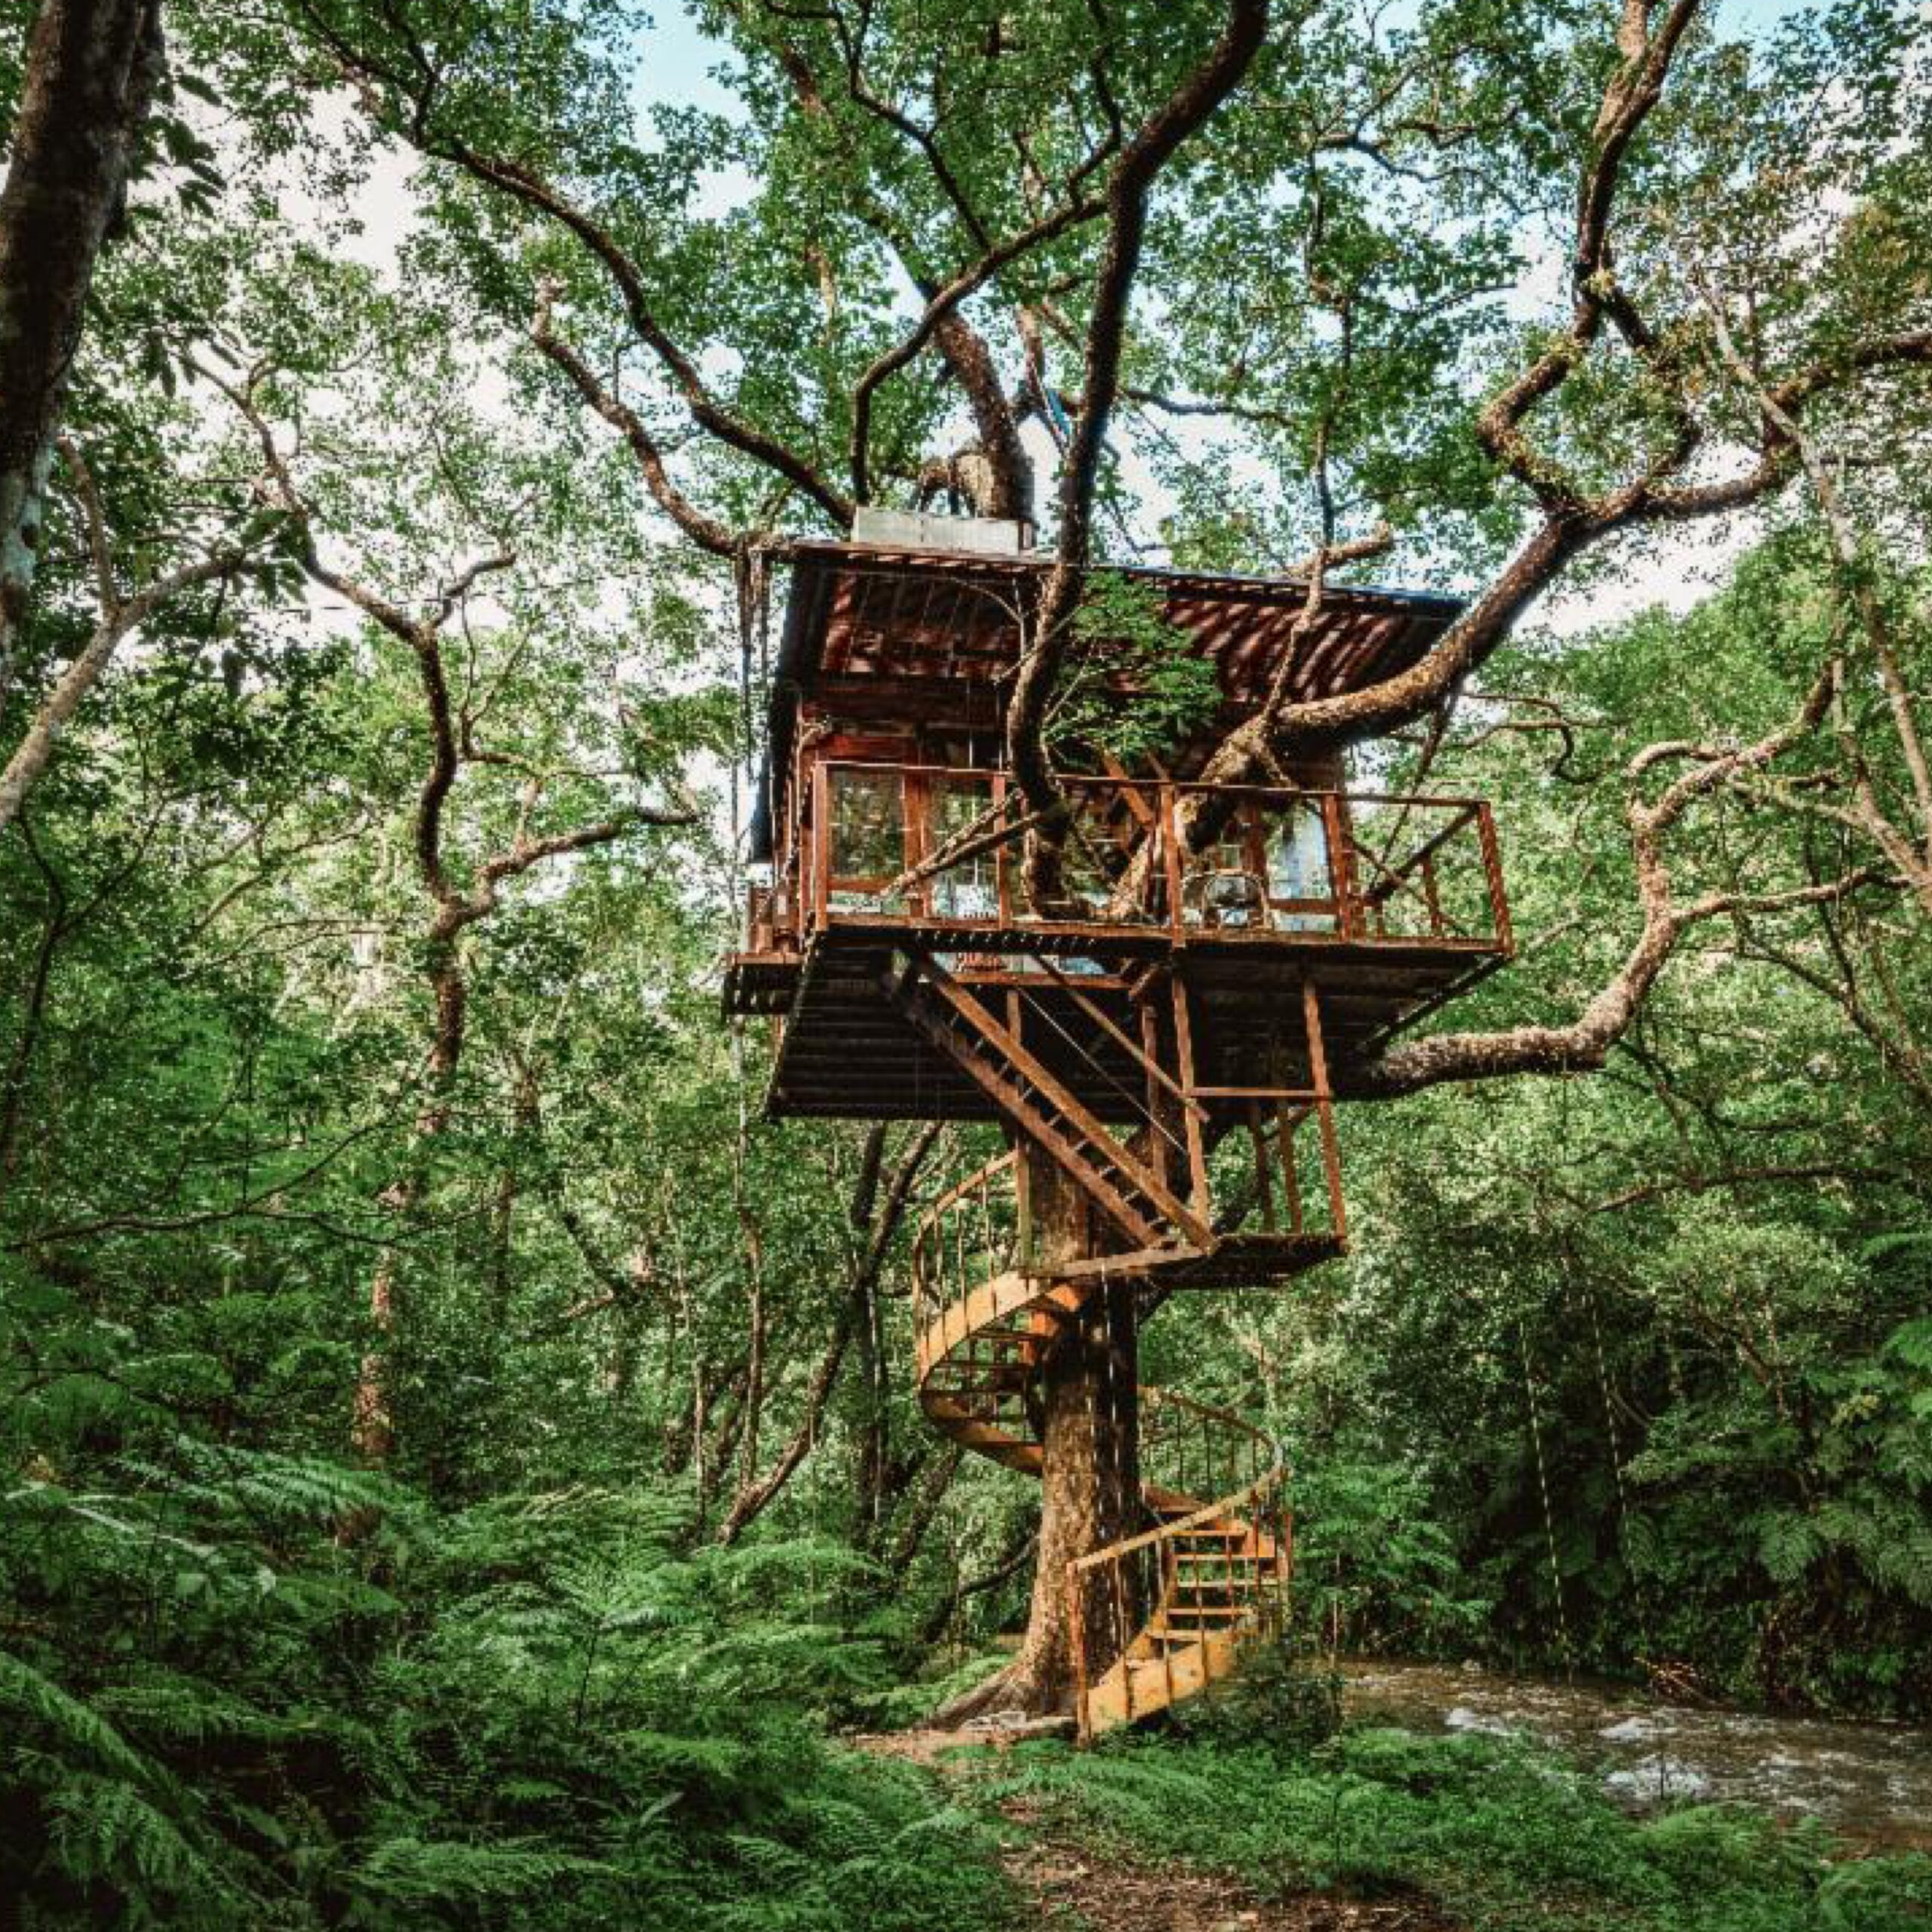 Treeful Treehouse EcoResort in Okinawa (© Treeful Treehouse EcoResort), Geoffrey Weill Associates, and Japan National Tourism Organization for 360 Magazine